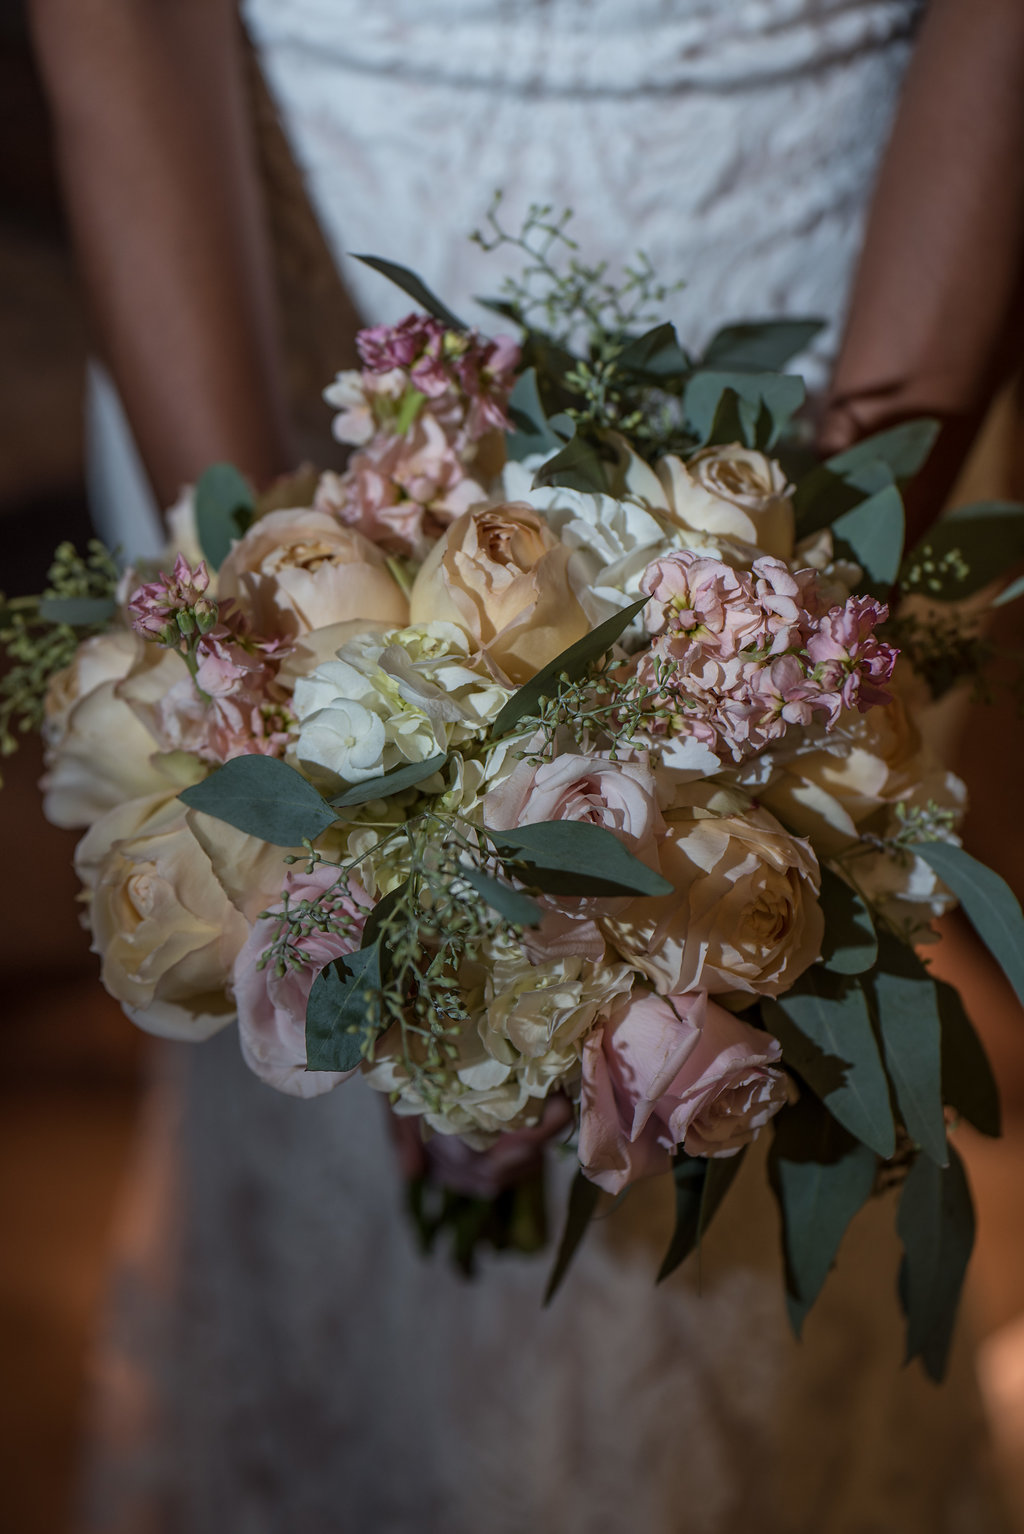 Bride with beautiful wedding bouquet,part of a Boho Brewery Wedding Styled Shoot at Triple C Barrel Room in Charlotte NC. Bouquet by Clux Florals.